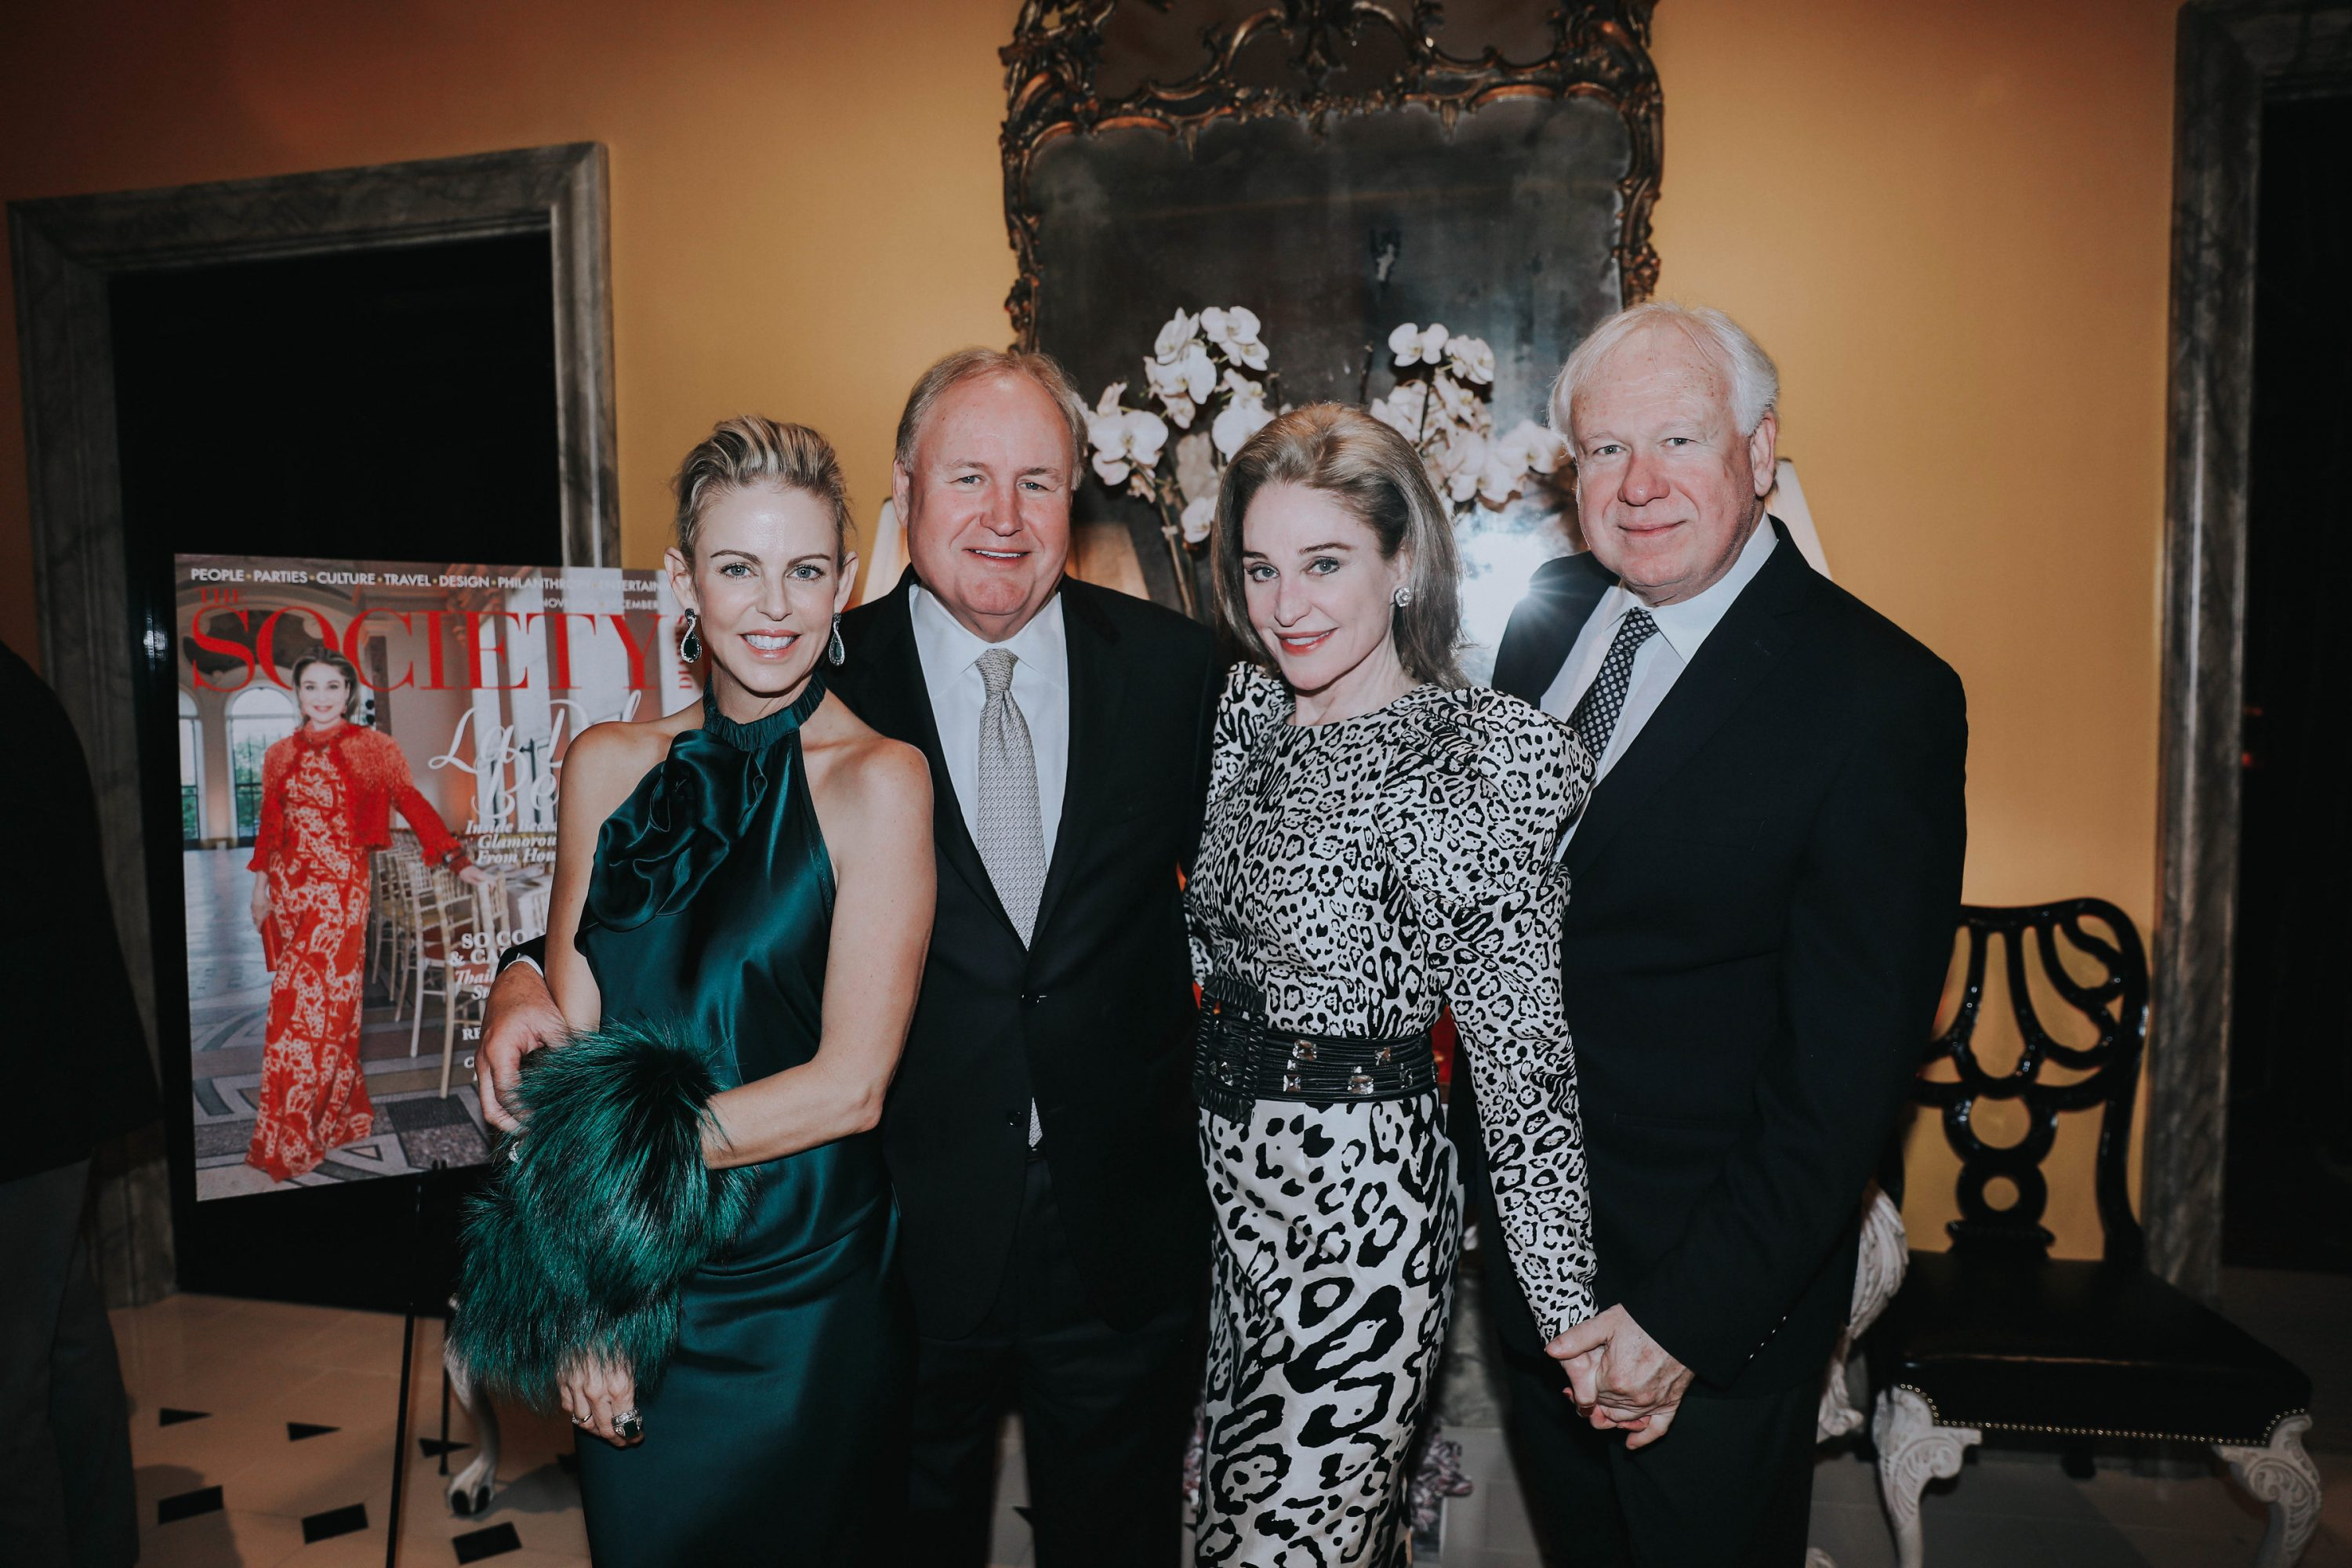 Society Diaries party for Becca Cason Thrash at Elizabeth & Gary Petersen